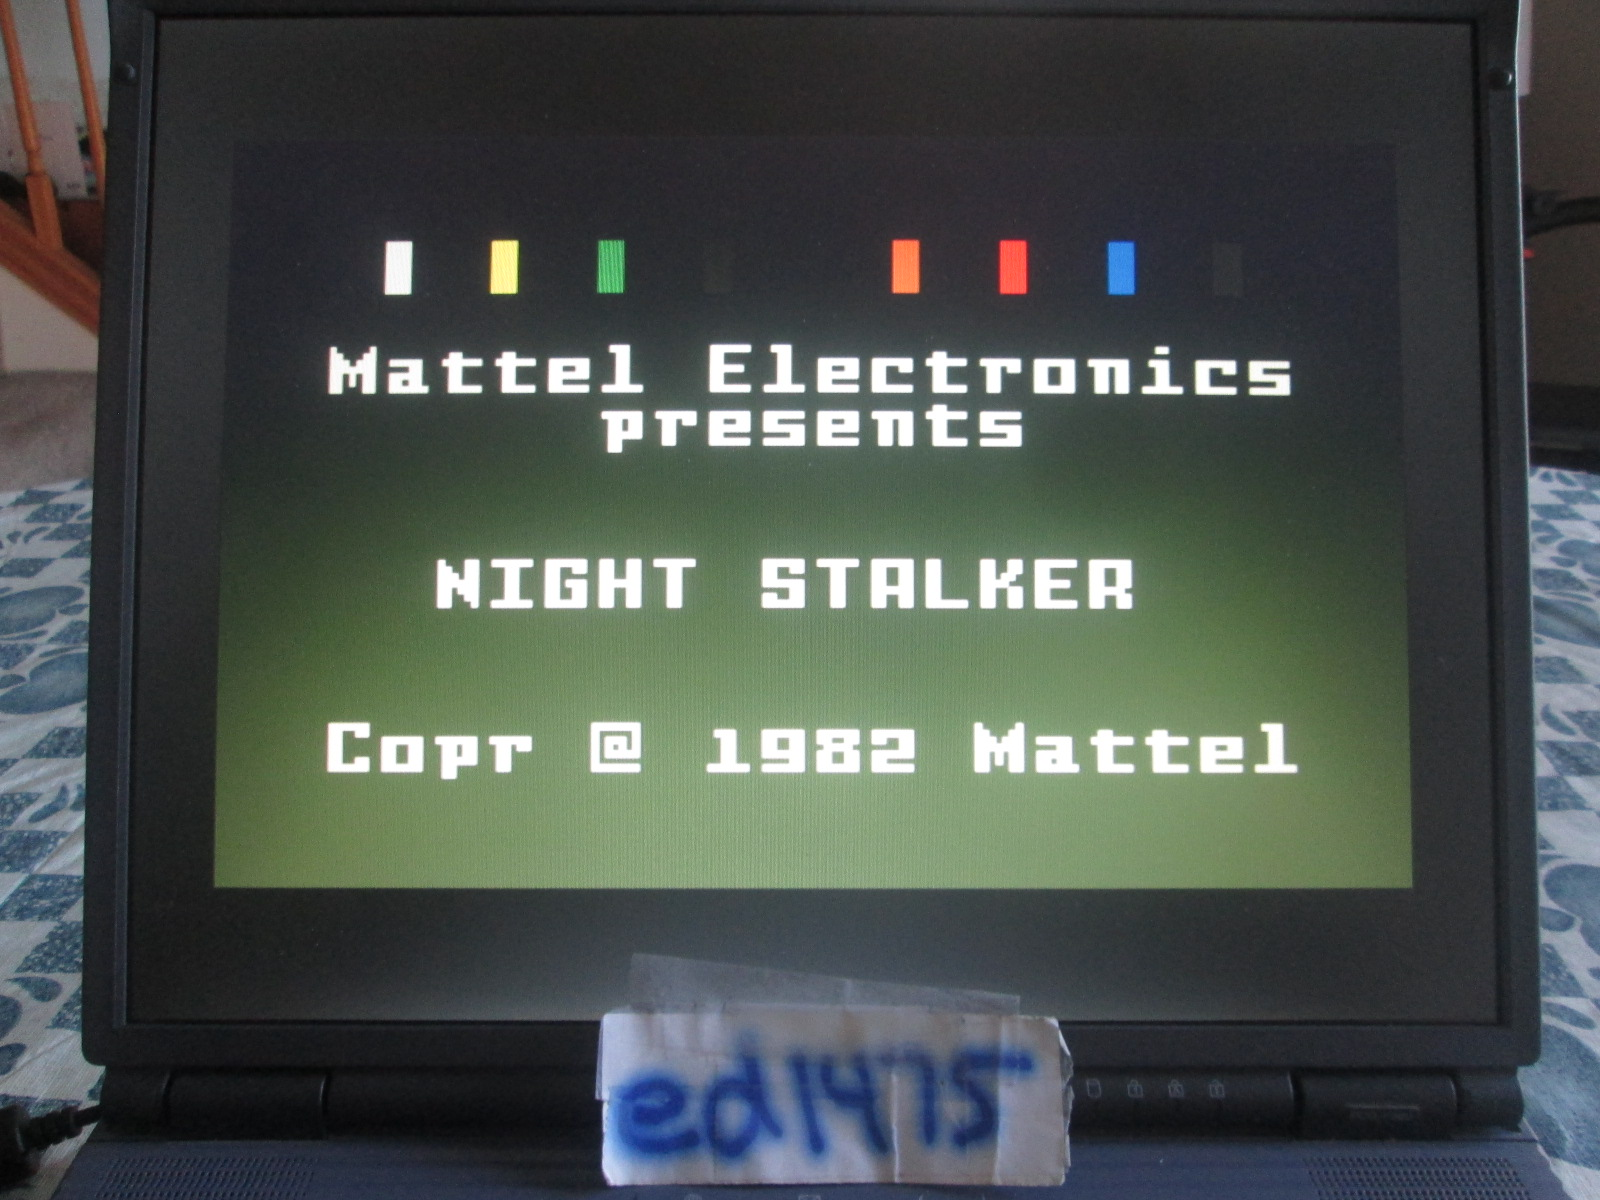 ed1475: Night Stalker: Game 3 [Slowest] (Intellivision Emulated) 8,700 points on 2018-10-15 19:16:25